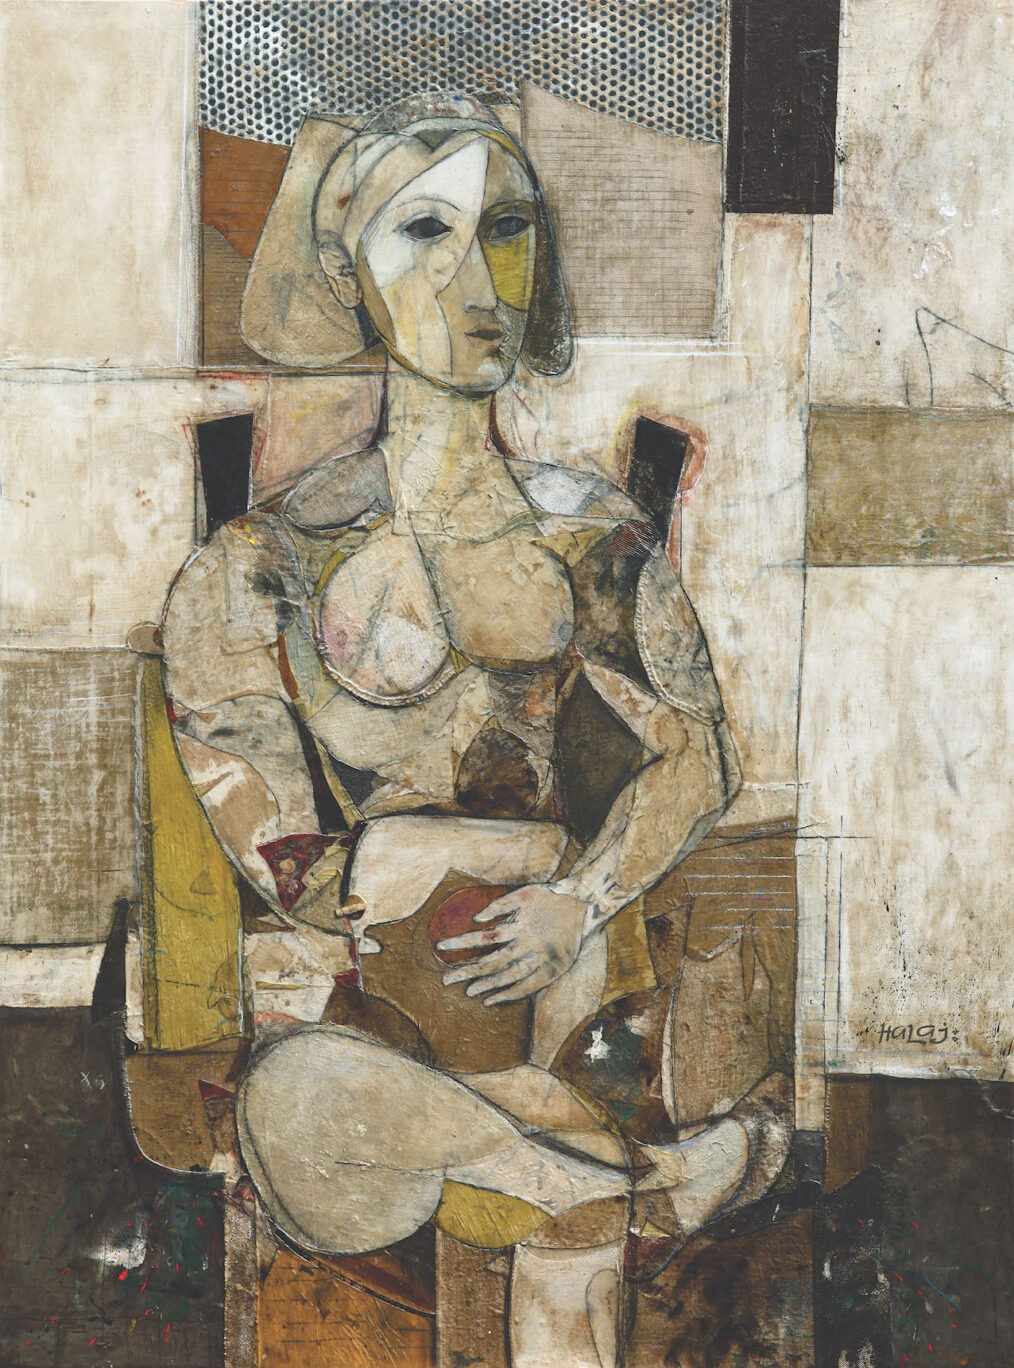 Seated Woman, 2014 Oil, emulsion, paper, mixed media on wood, 48x36 in. (121.9x91.4 cm).